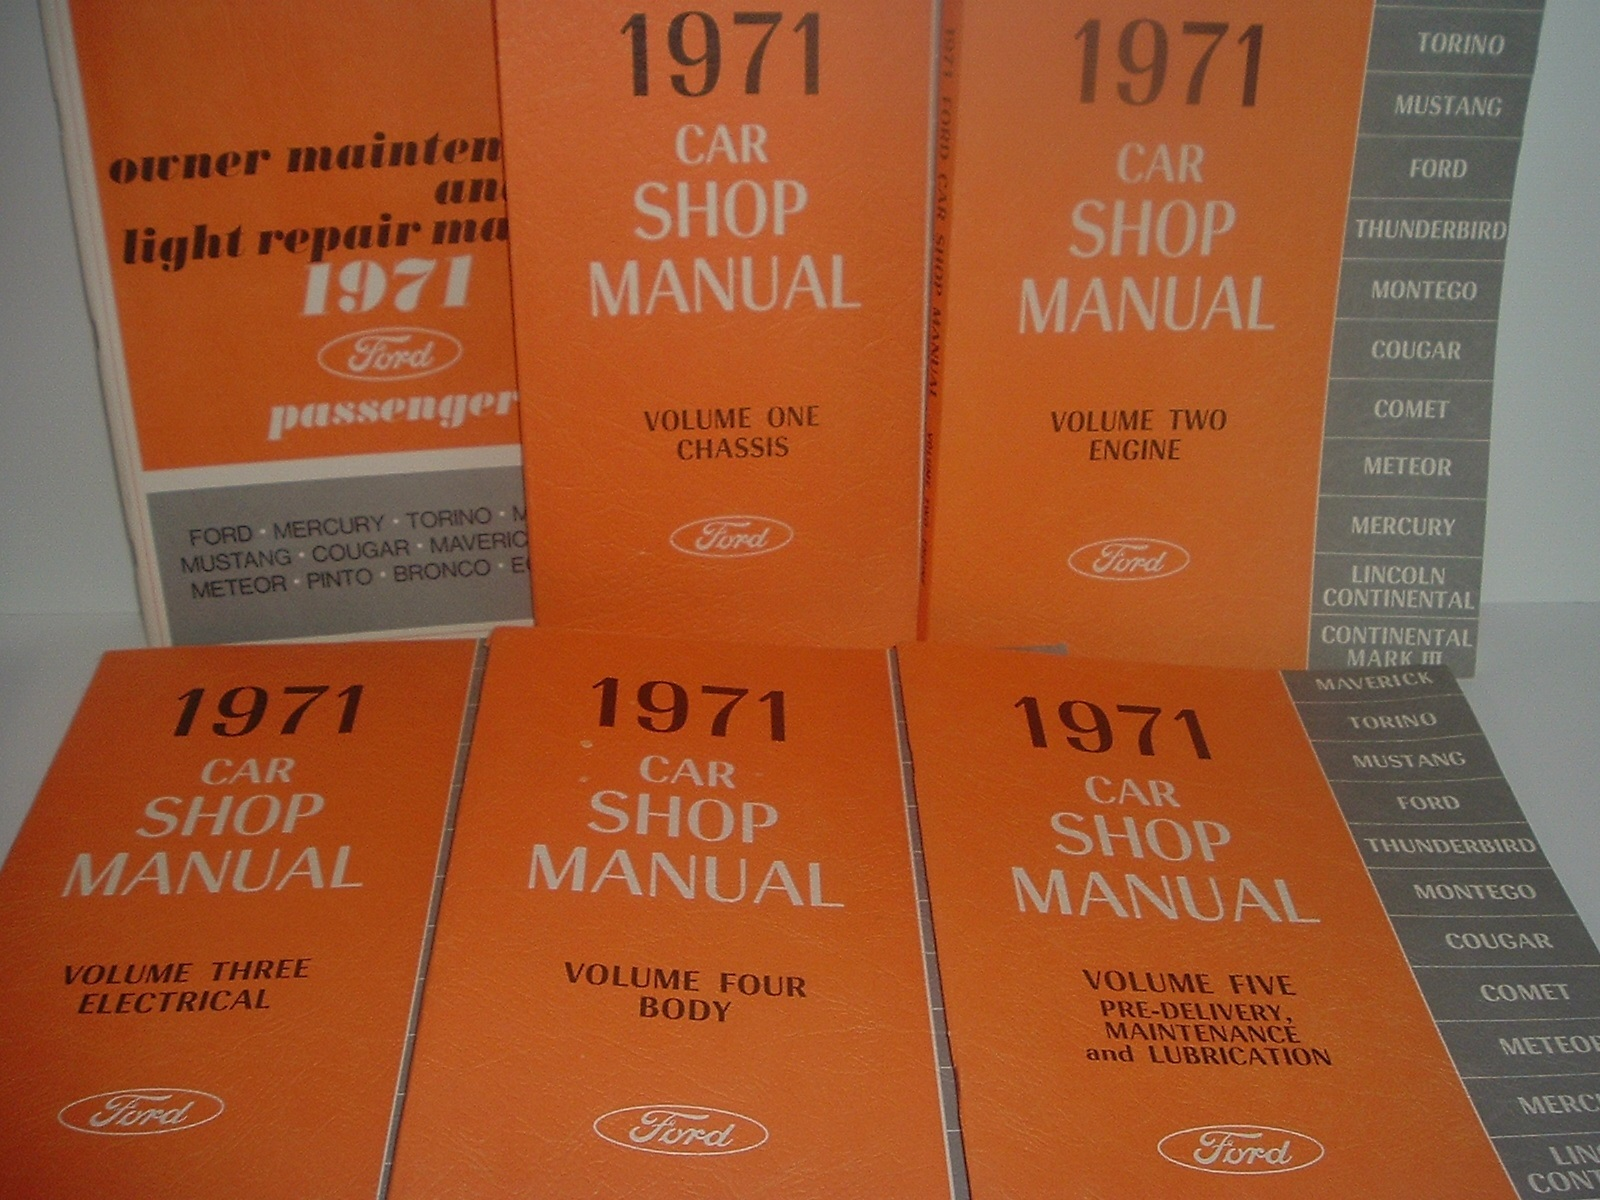 Primary image for 1971 Ford Car Shop Manuals Volumes 1 - 5 and Owner Maintenance Manual